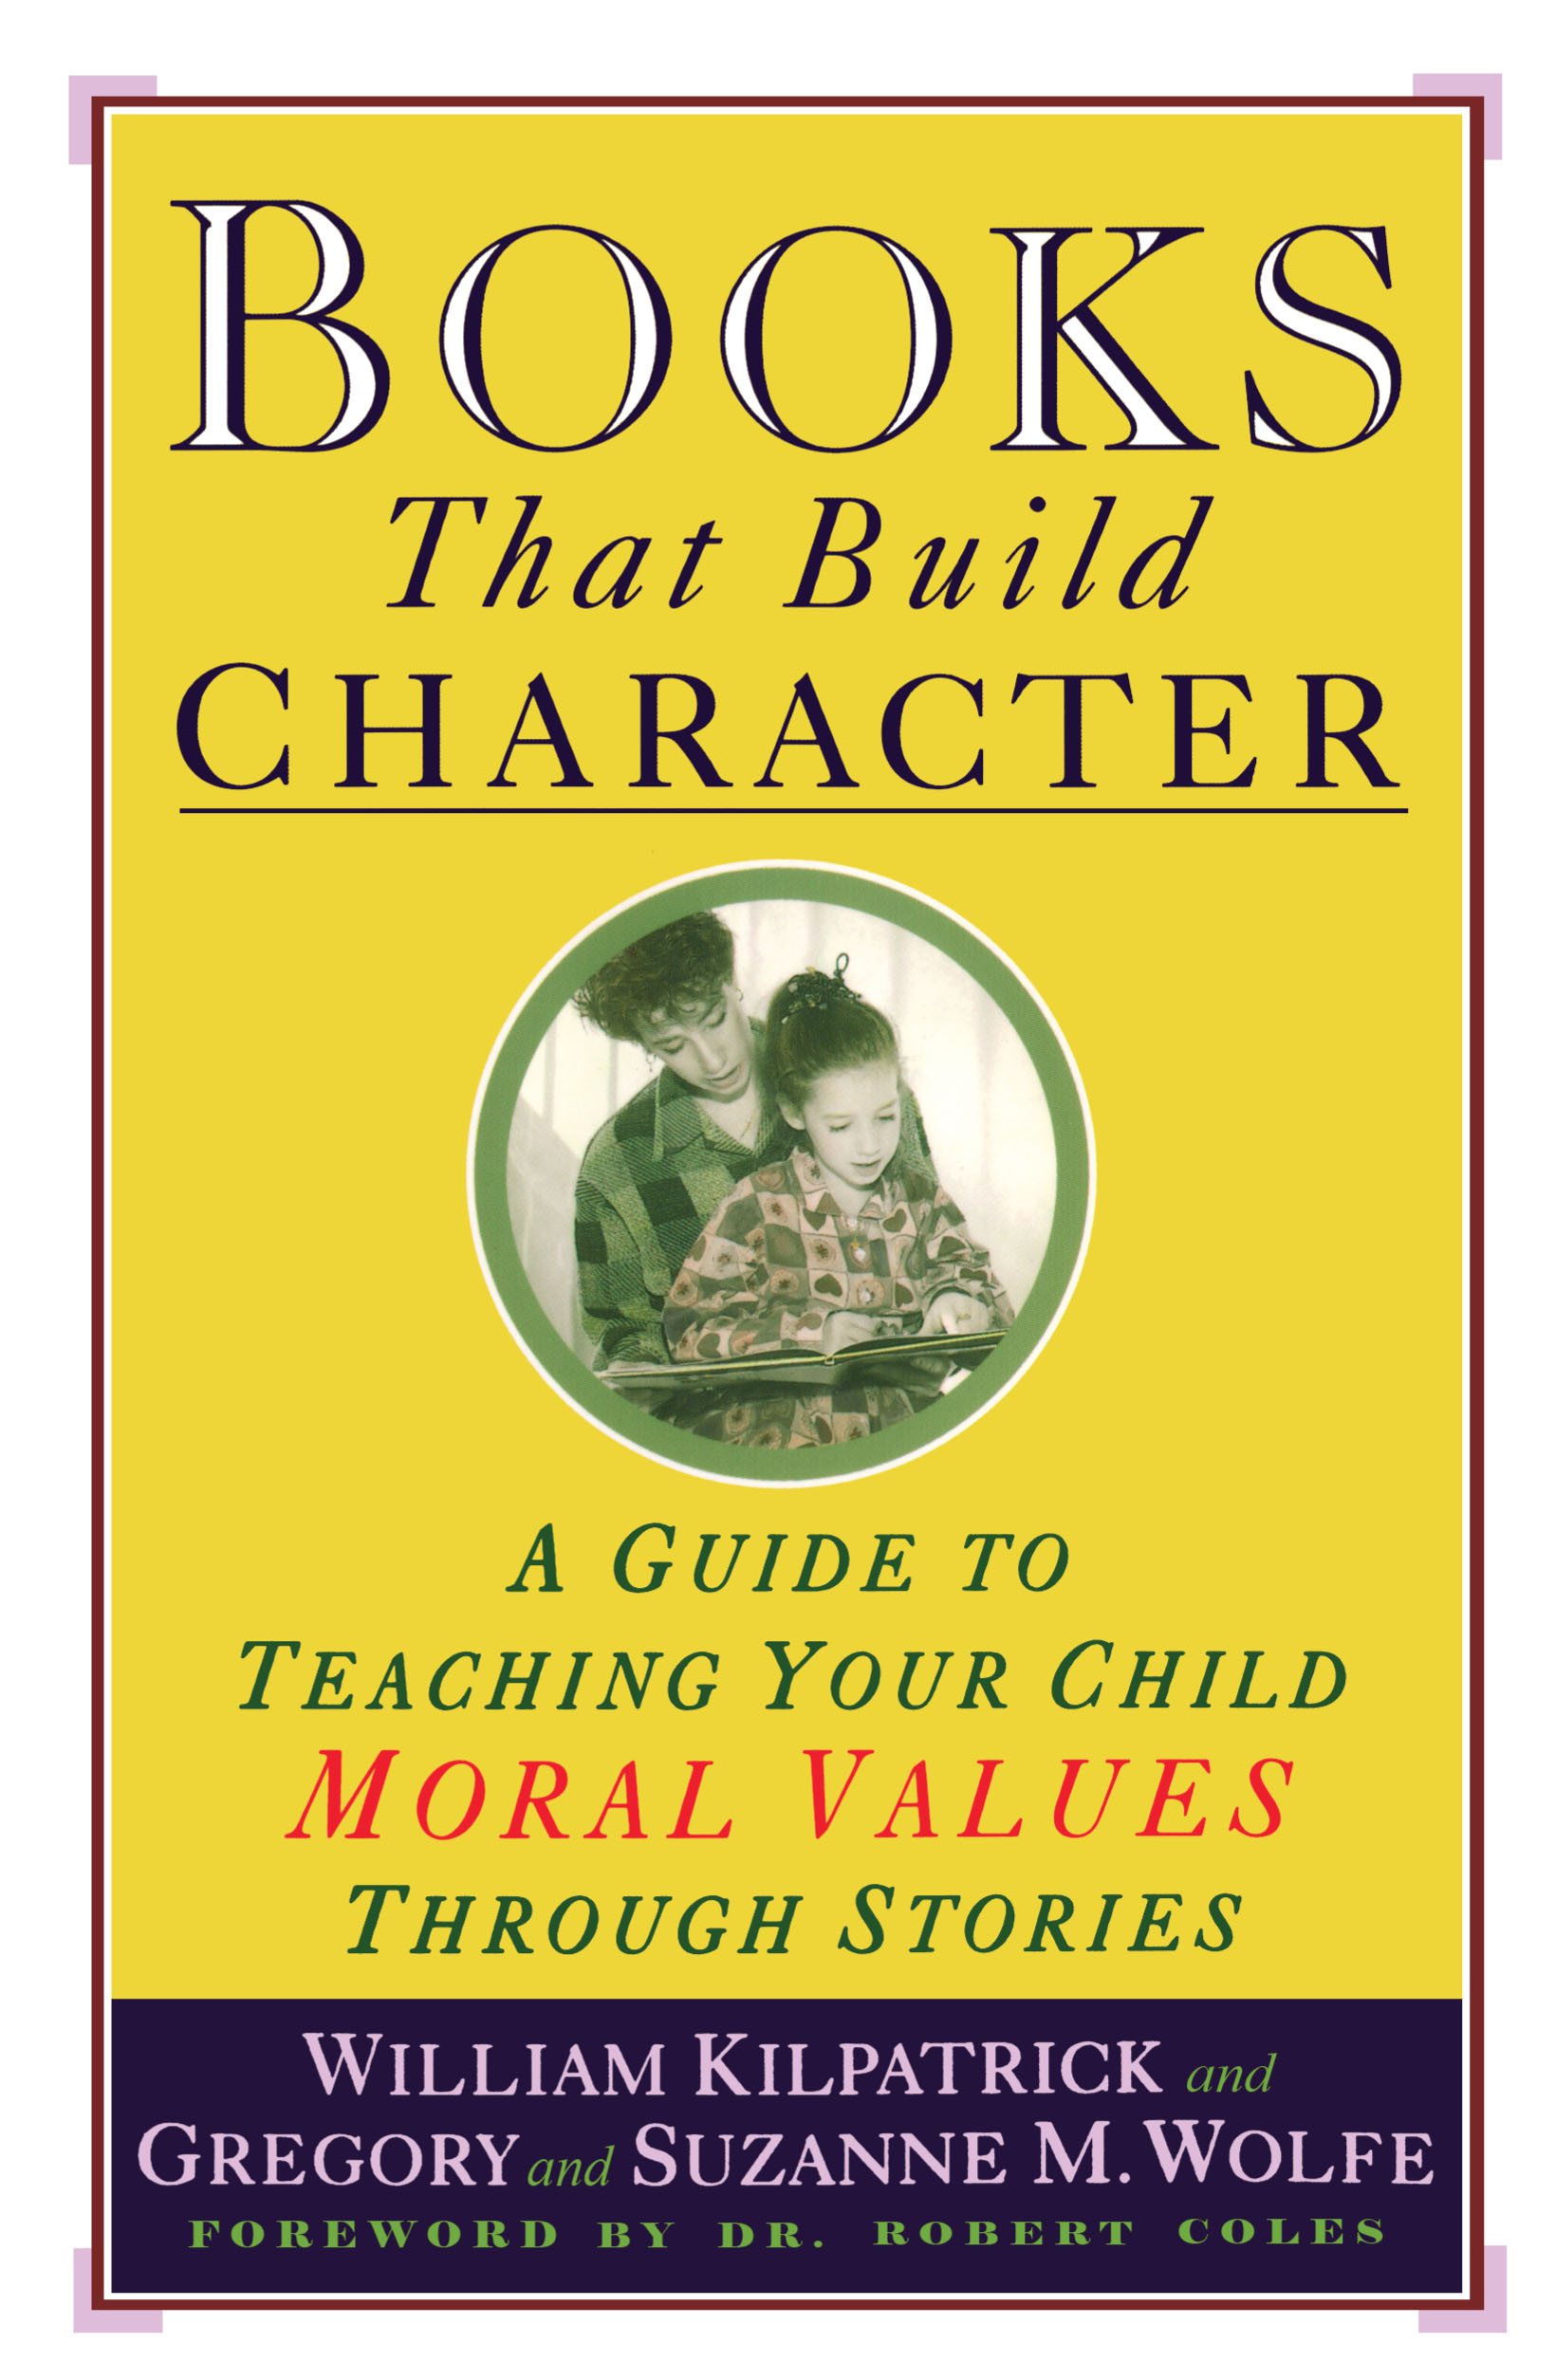 books that build character book by william kilpatrick official  a guide to teaching your child moral values through stories